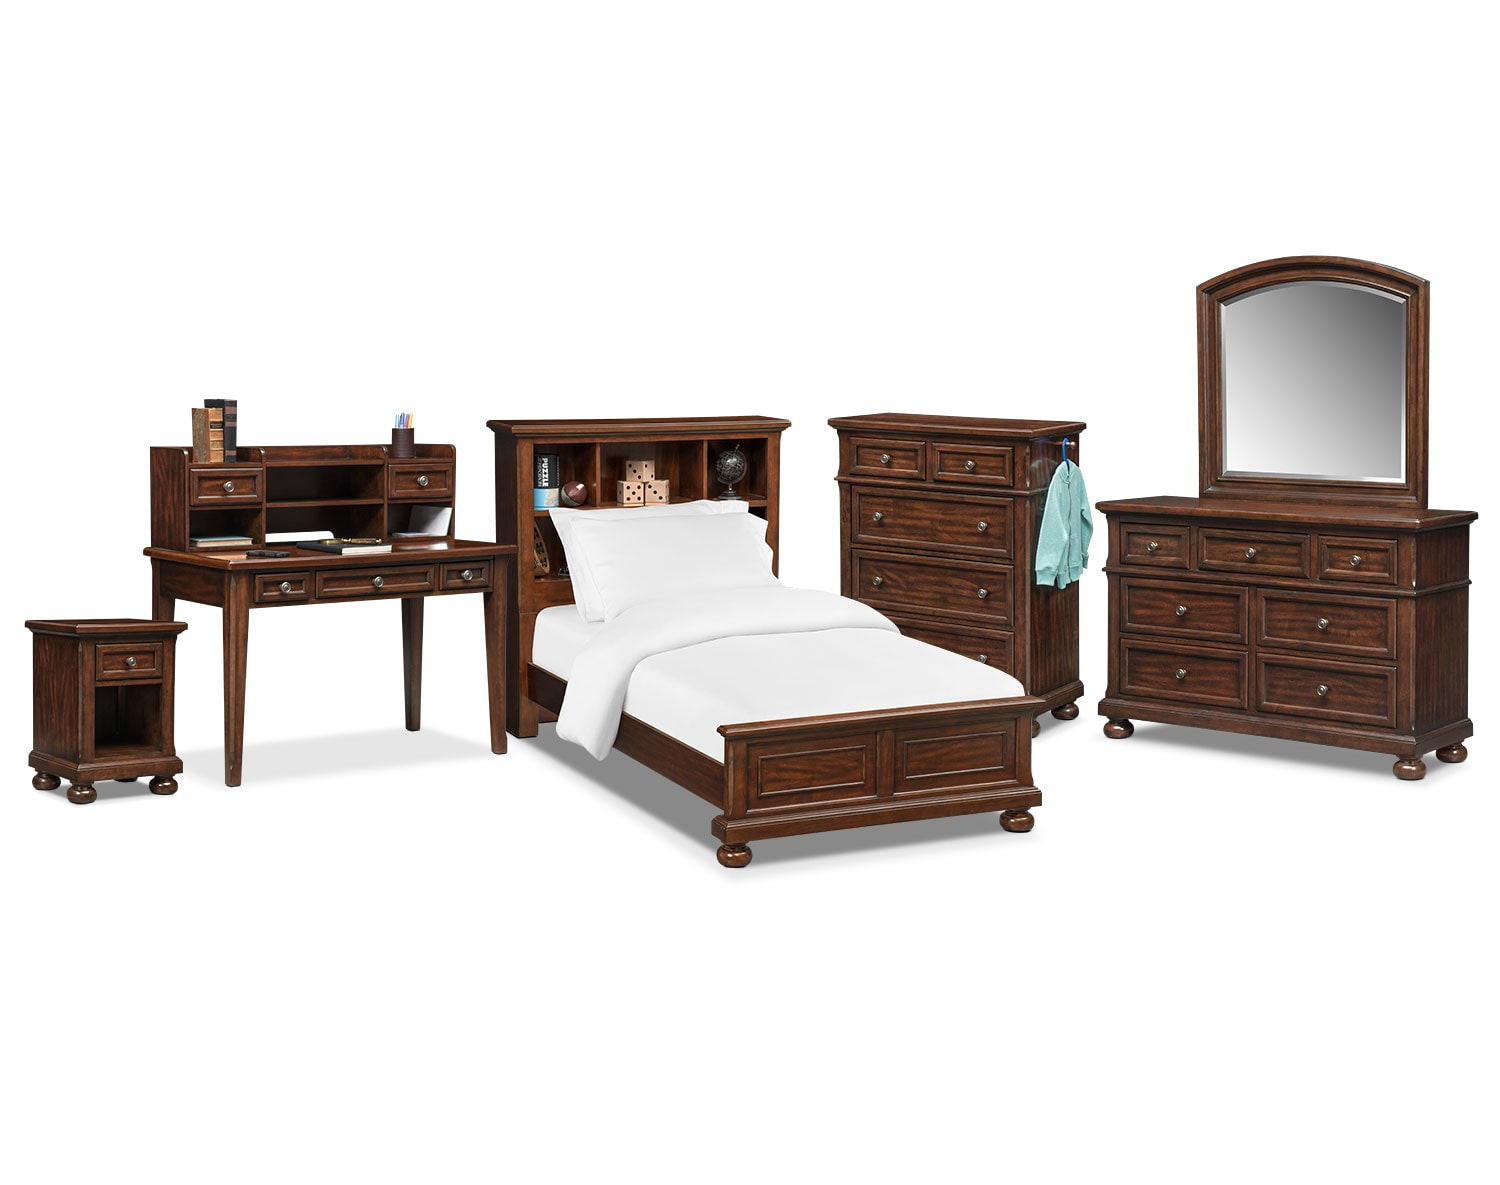 The Hanover Youth Bookcase Bedroom Collection   Cherry